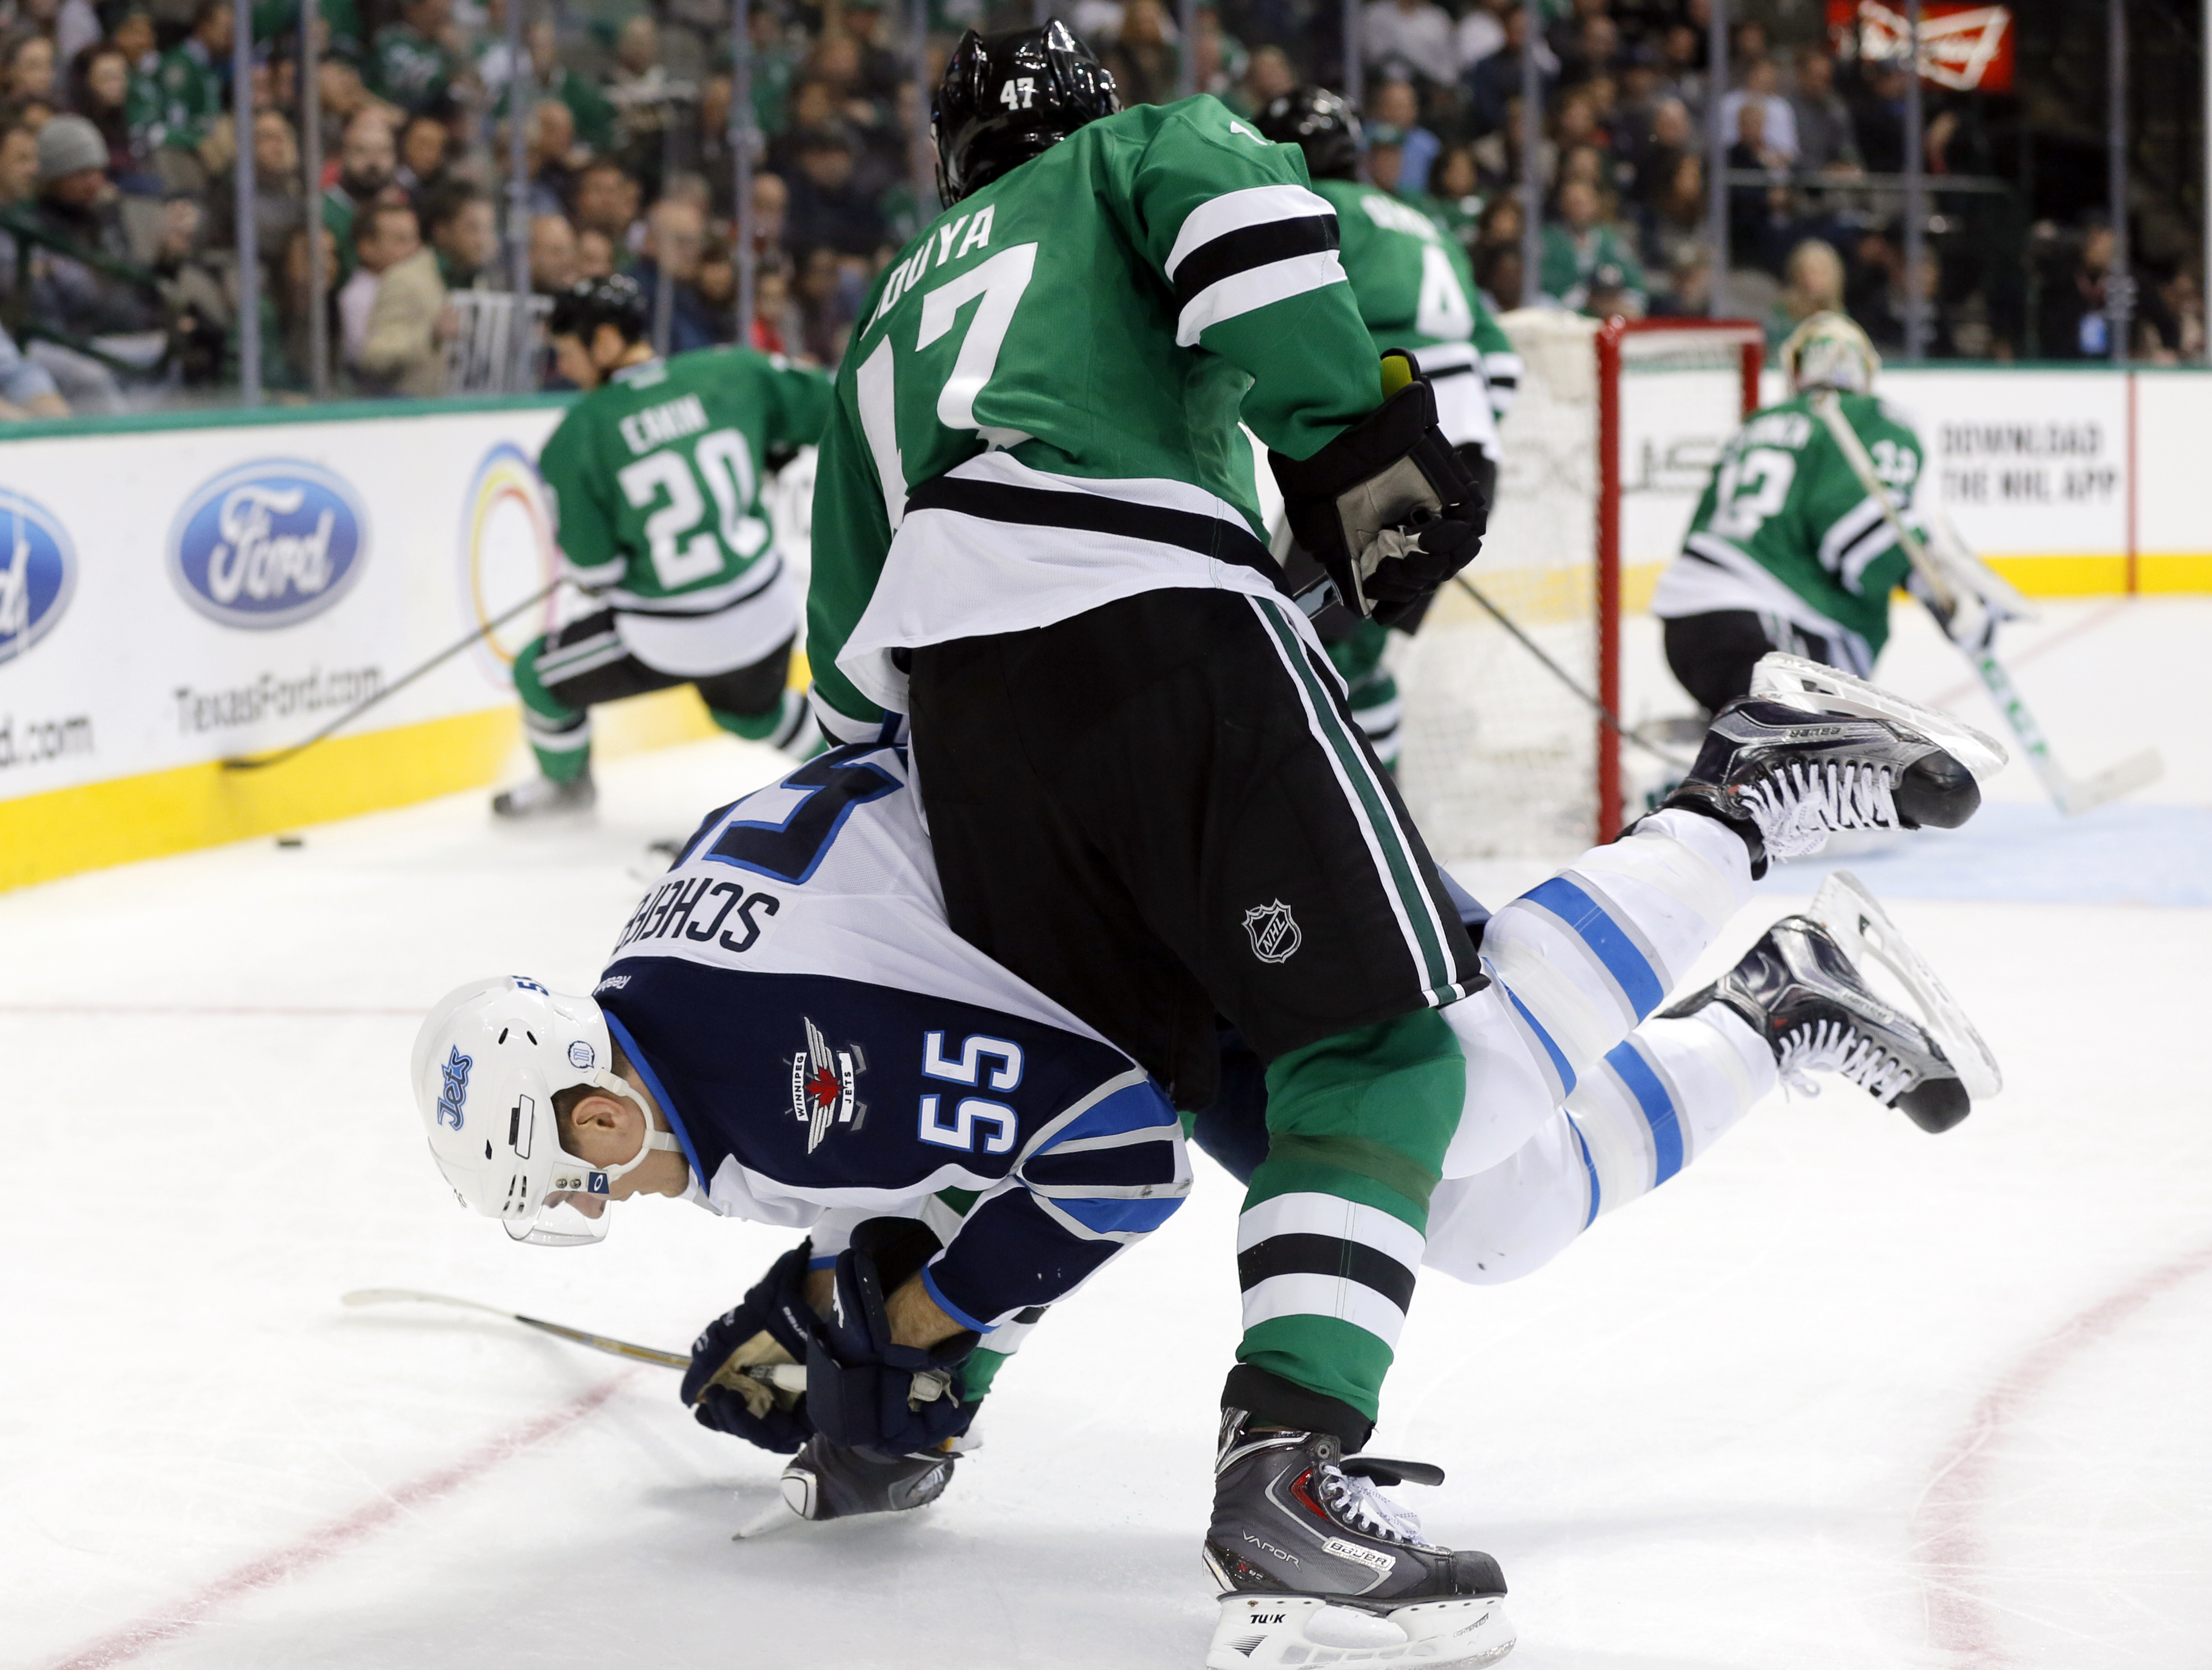 Winnipeg Jets' Mark Scheifele (55) and Dallas Stars' Johnny Oduya, of Sweden, become entangled in the corner in the second period of an NHL hockey game Thursday, Nov. 12, 2015, in Dallas. (AP Photo/Tony Gutierrez)